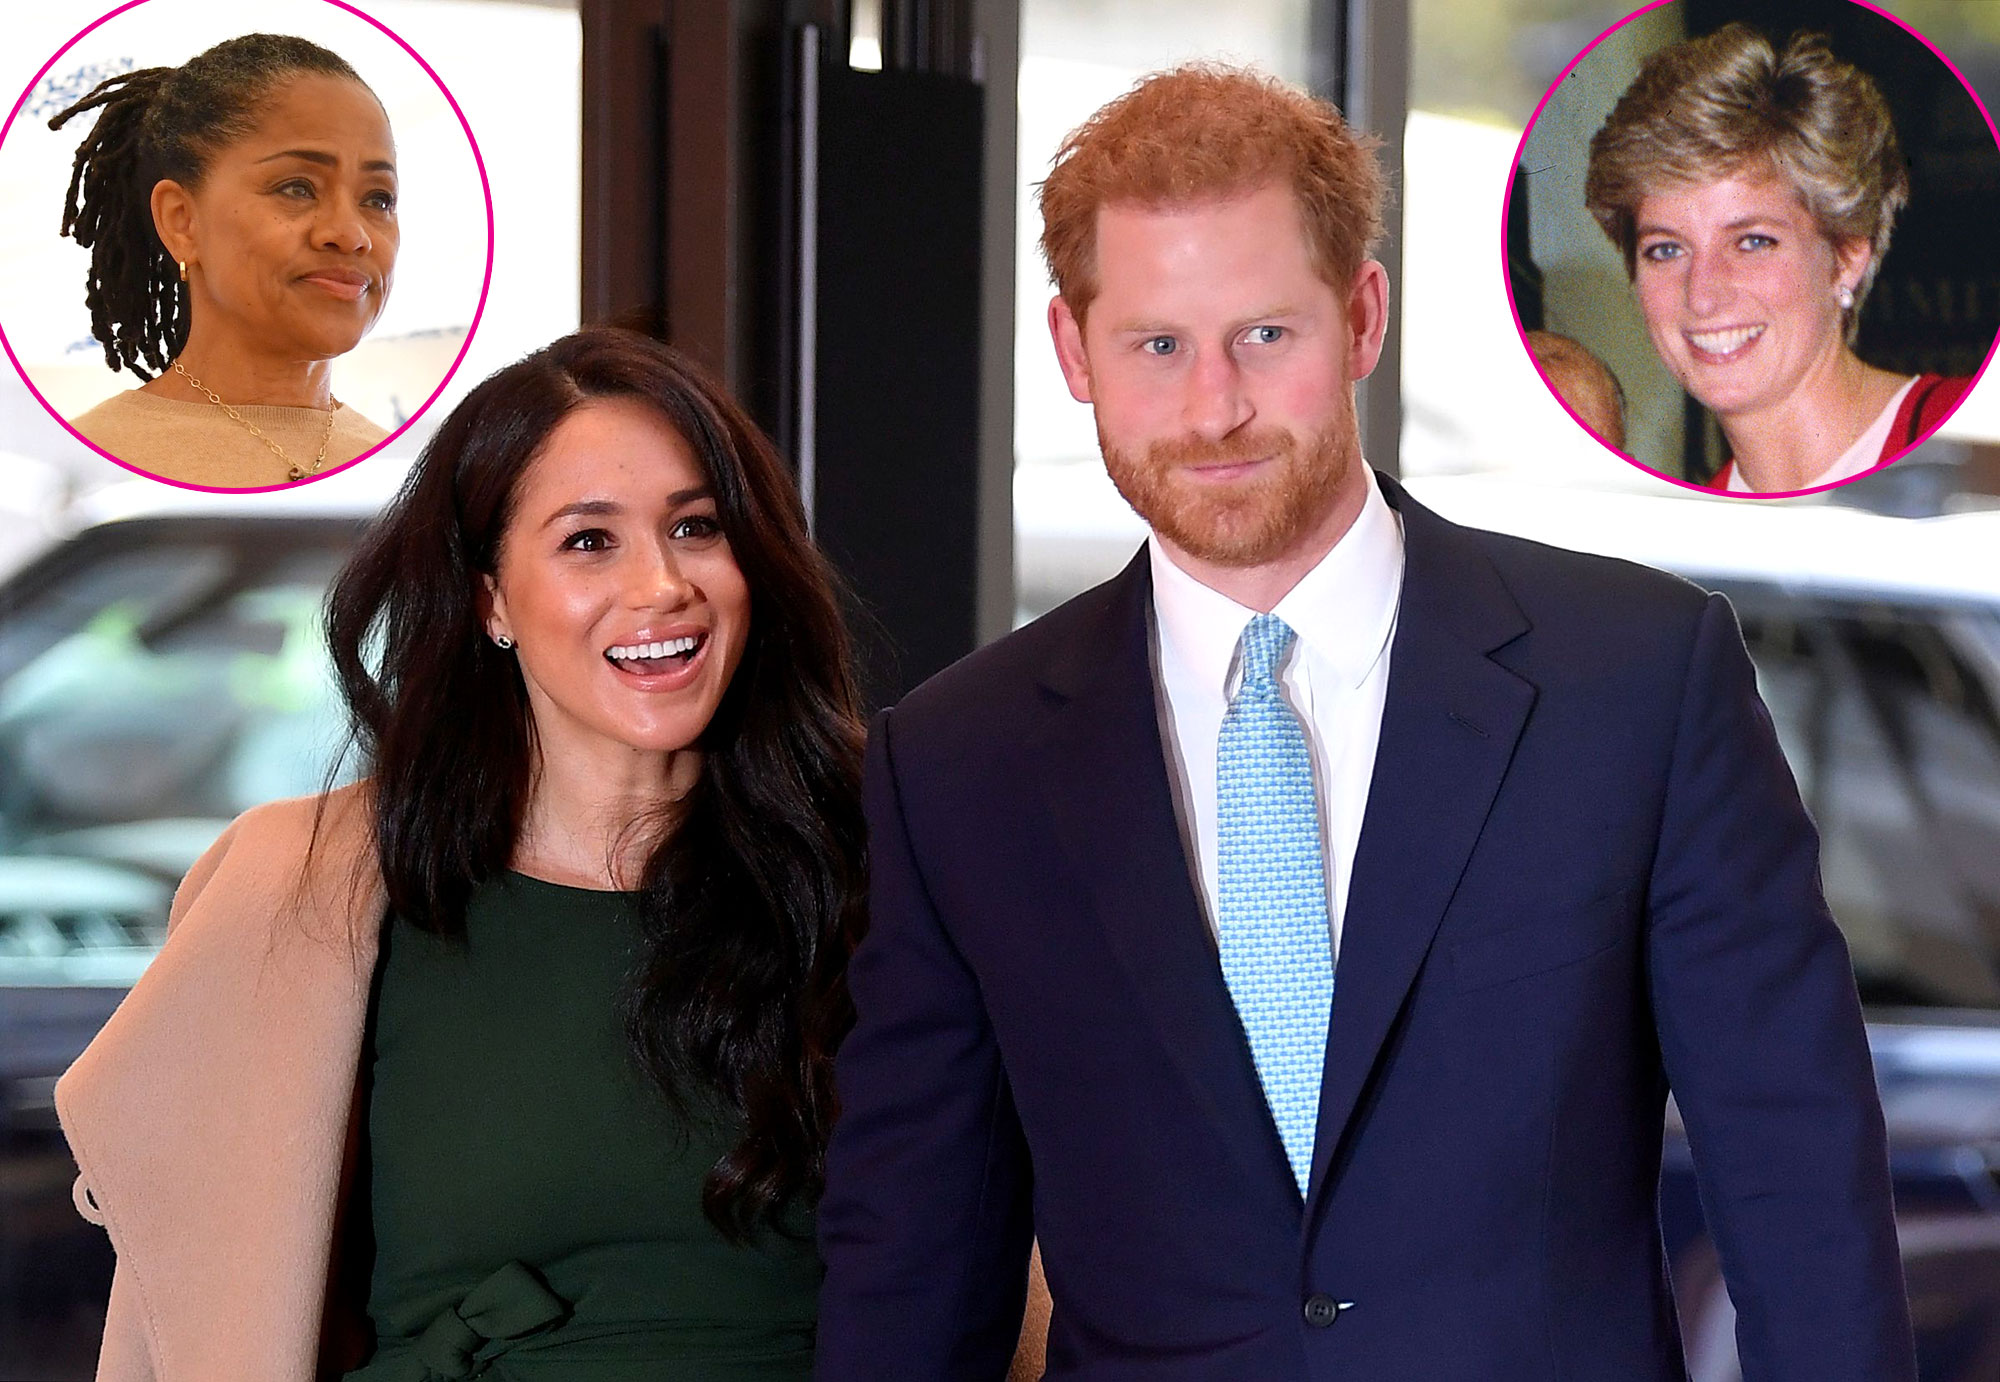 Prince Harry At Christmas 2021 Prince Harry Meghan Markle Pay Tribute To Their Moms In 2021 Letter